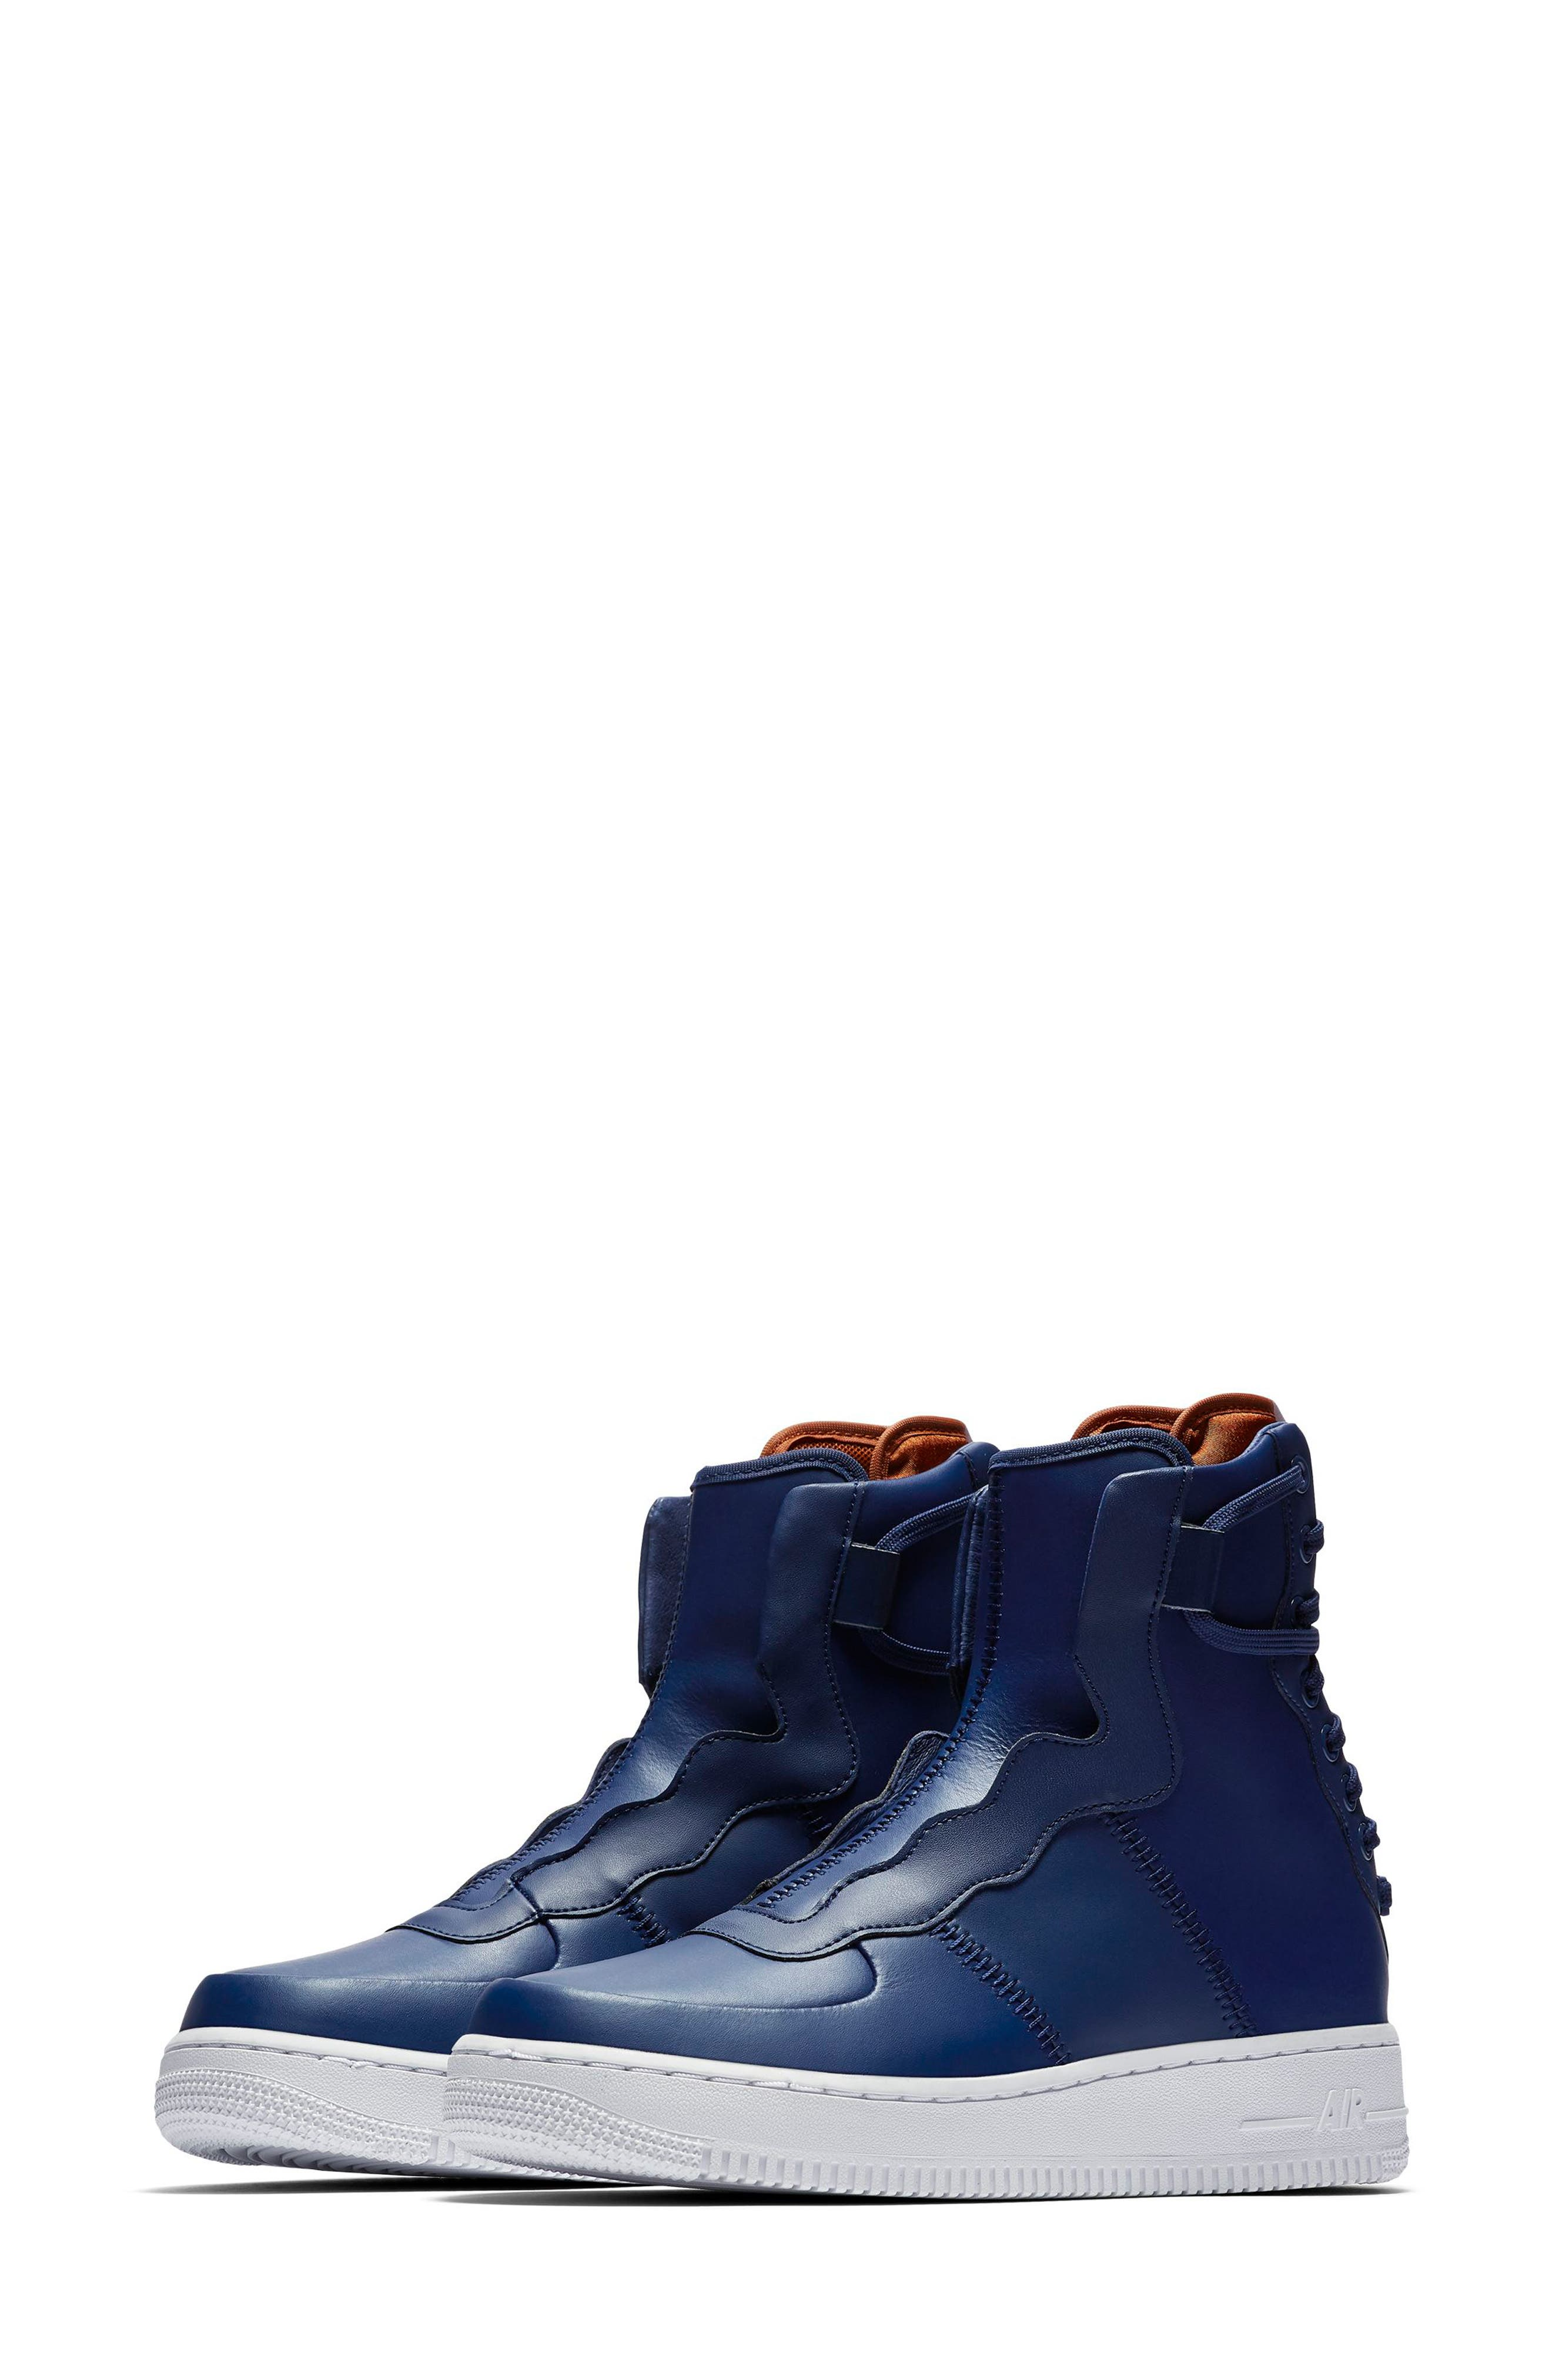 NIKE Air Force 1 Rebel XX High Top Sneaker, Main, color, BLUE VOID/ RUSSET/ WHITE/ BLUE